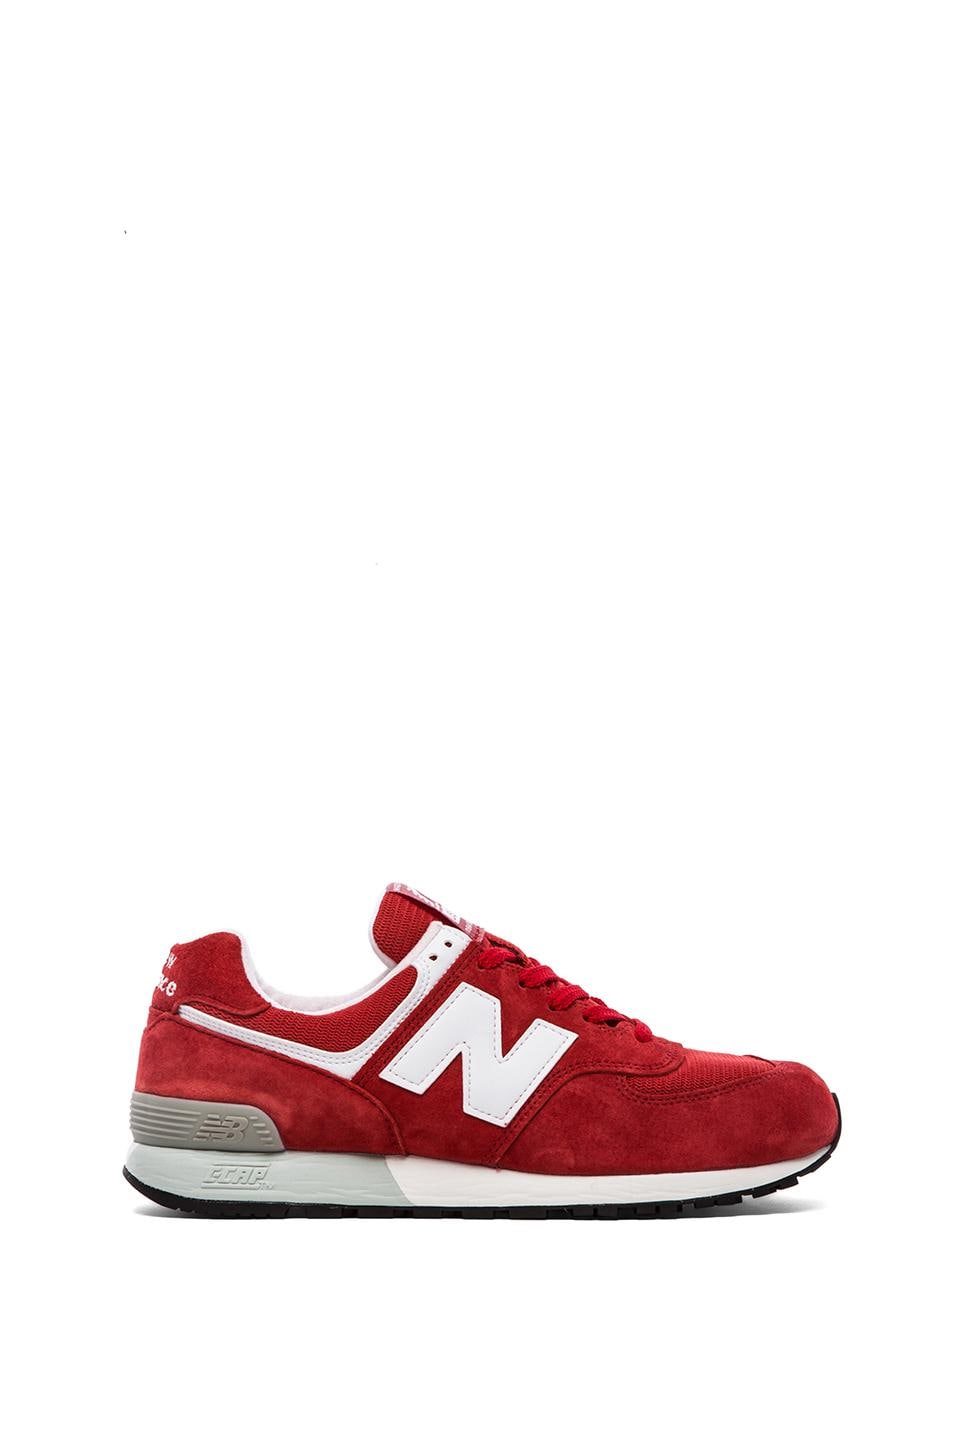 New Balance Made in USA US576 in Red & White